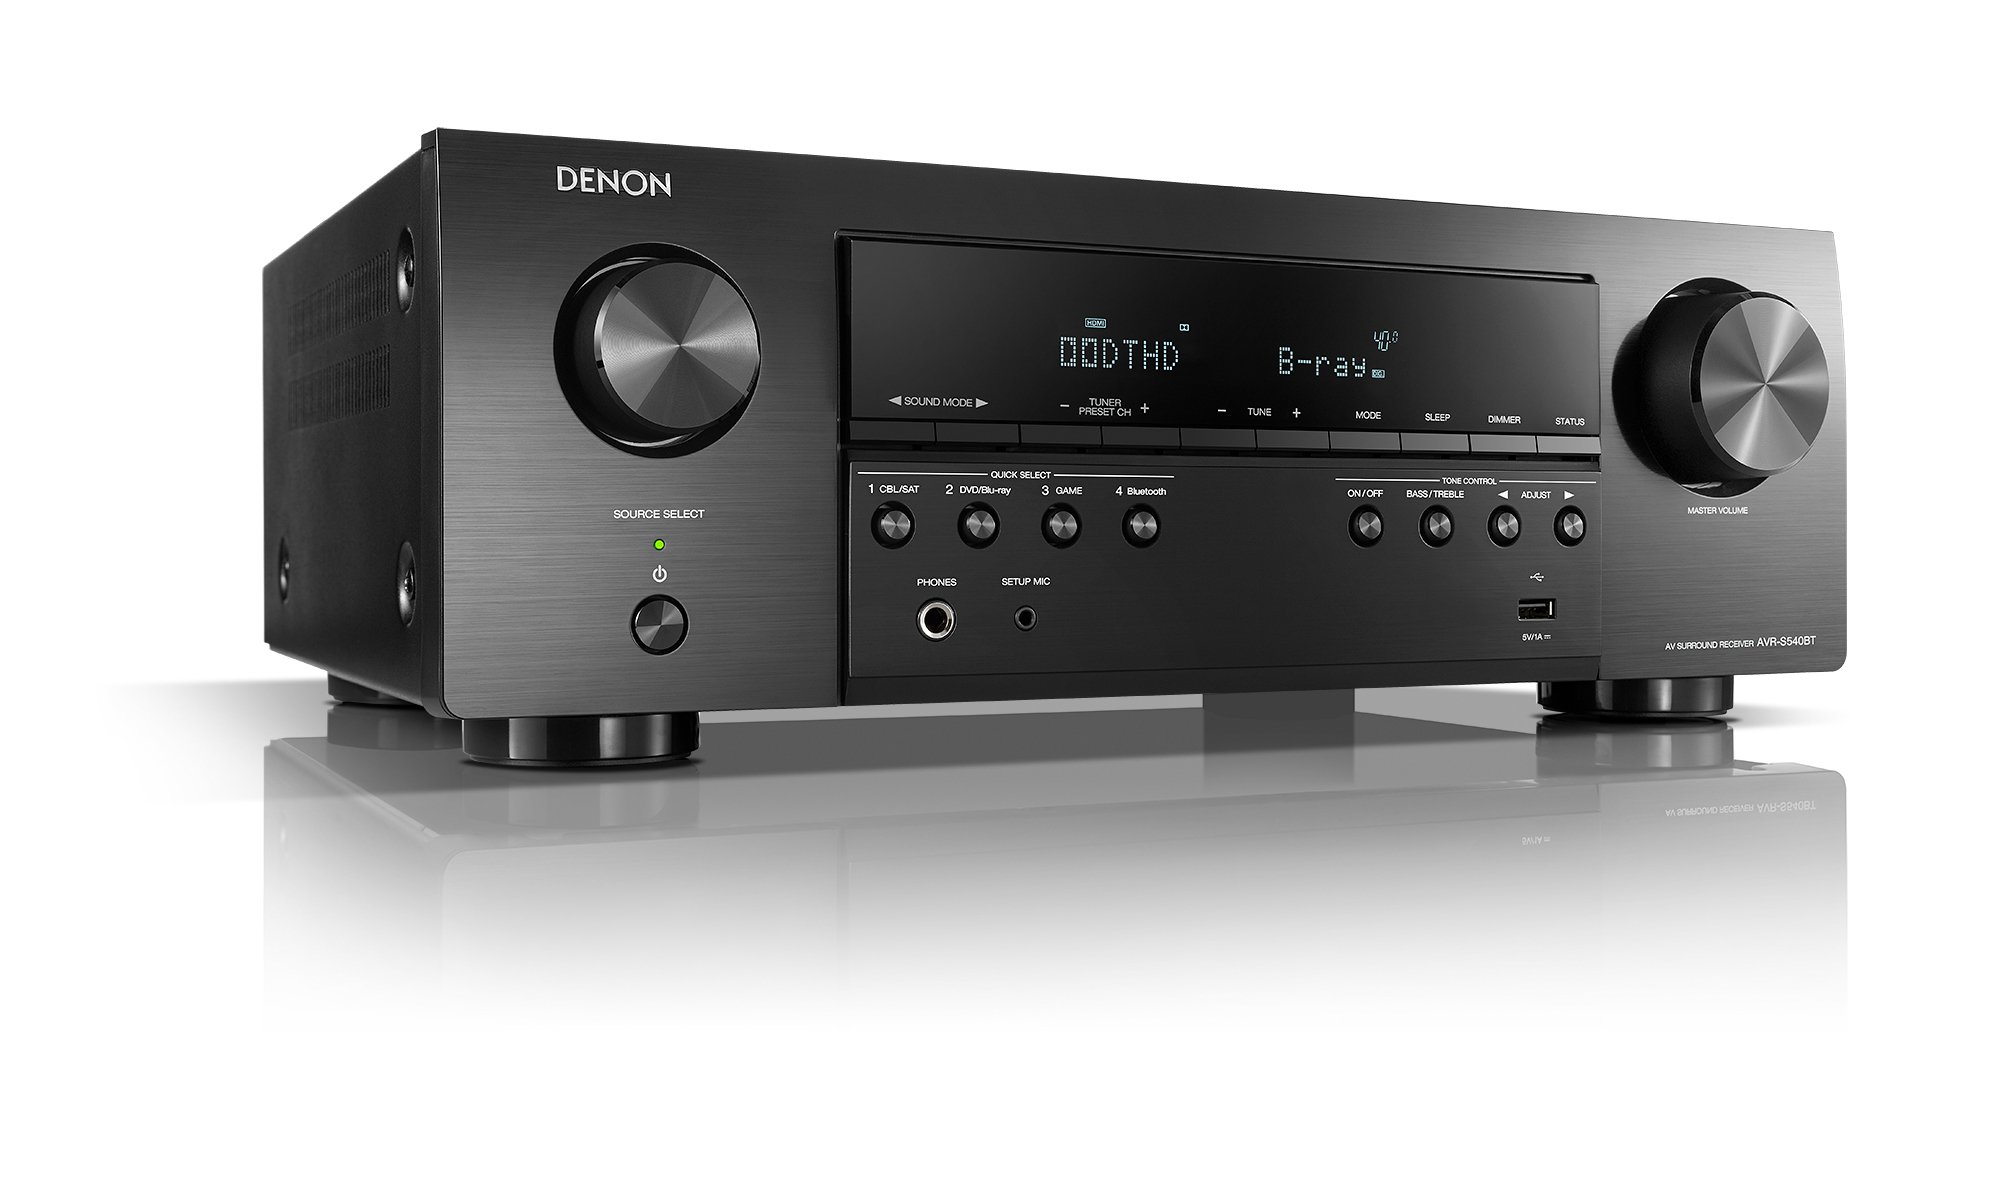 Denon AVR-S540BT Receiver, 5.2 channel, 4K Ultra HD Audio and Video, Home Theater System, built-in Bluetooth and USB port, Compatible with HEOS Link for Wireless Music Streaming by Denon